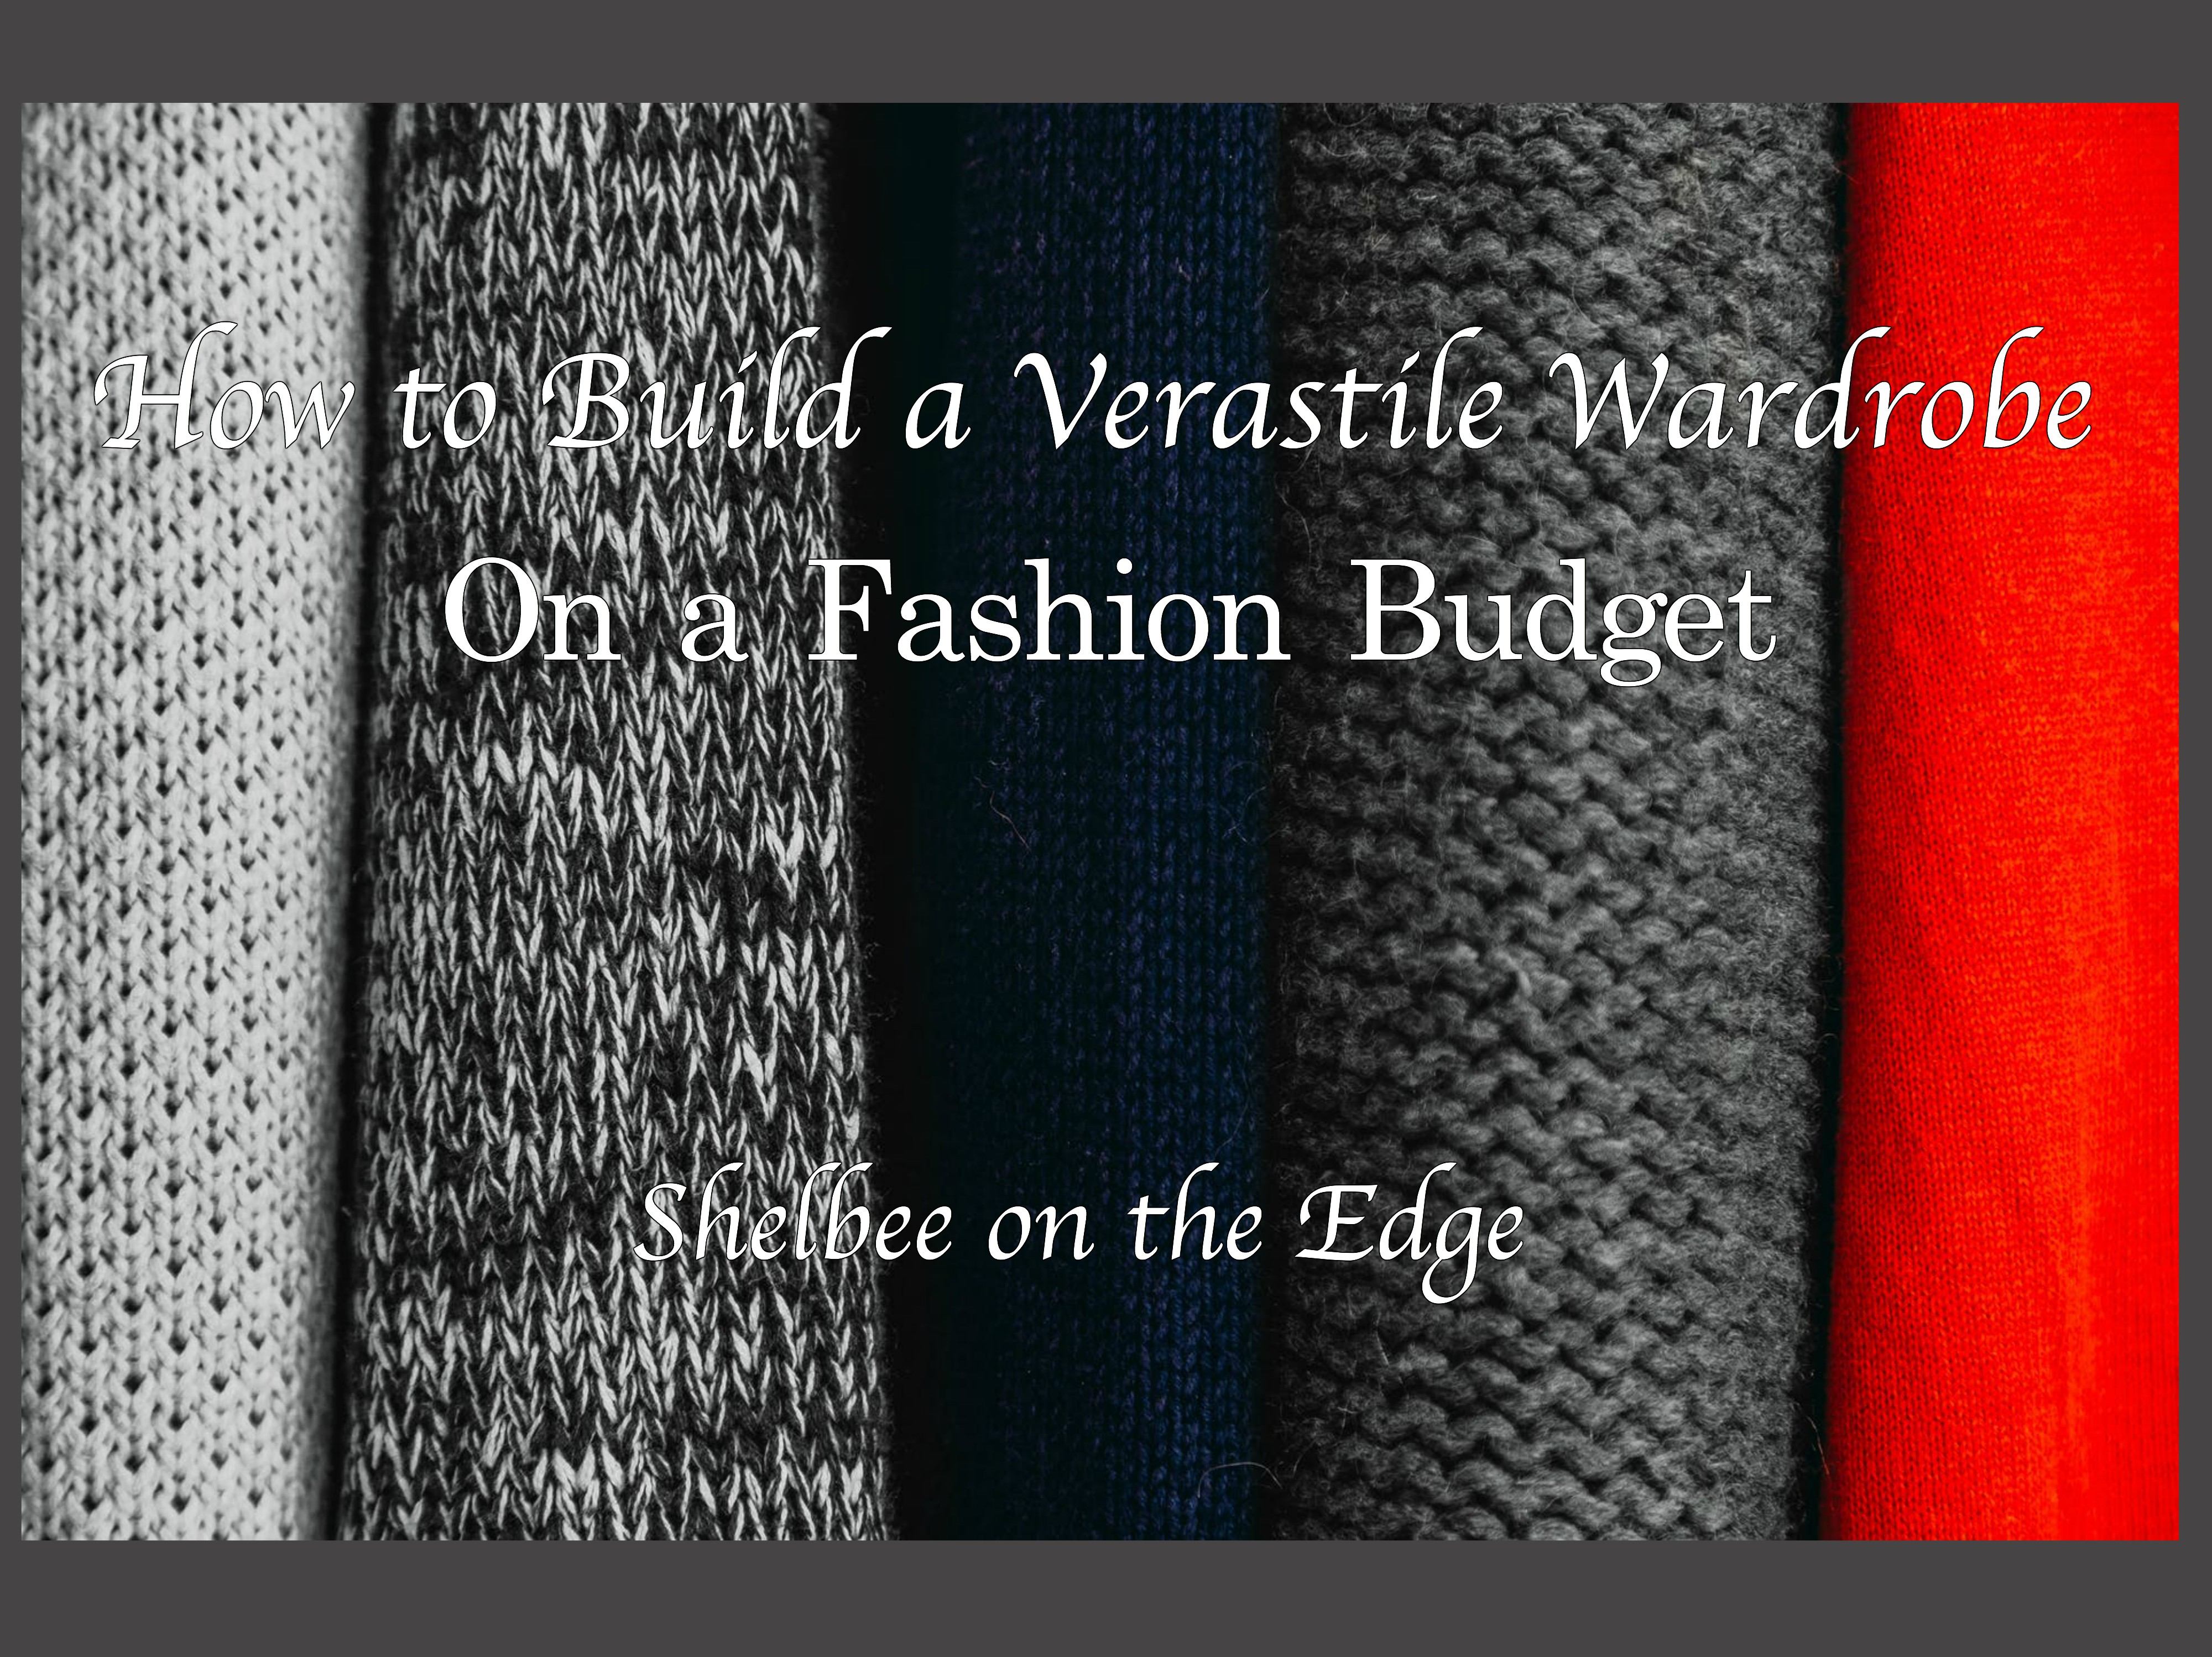 How to Build a Versatile Wardrobe on a Fashion Budget